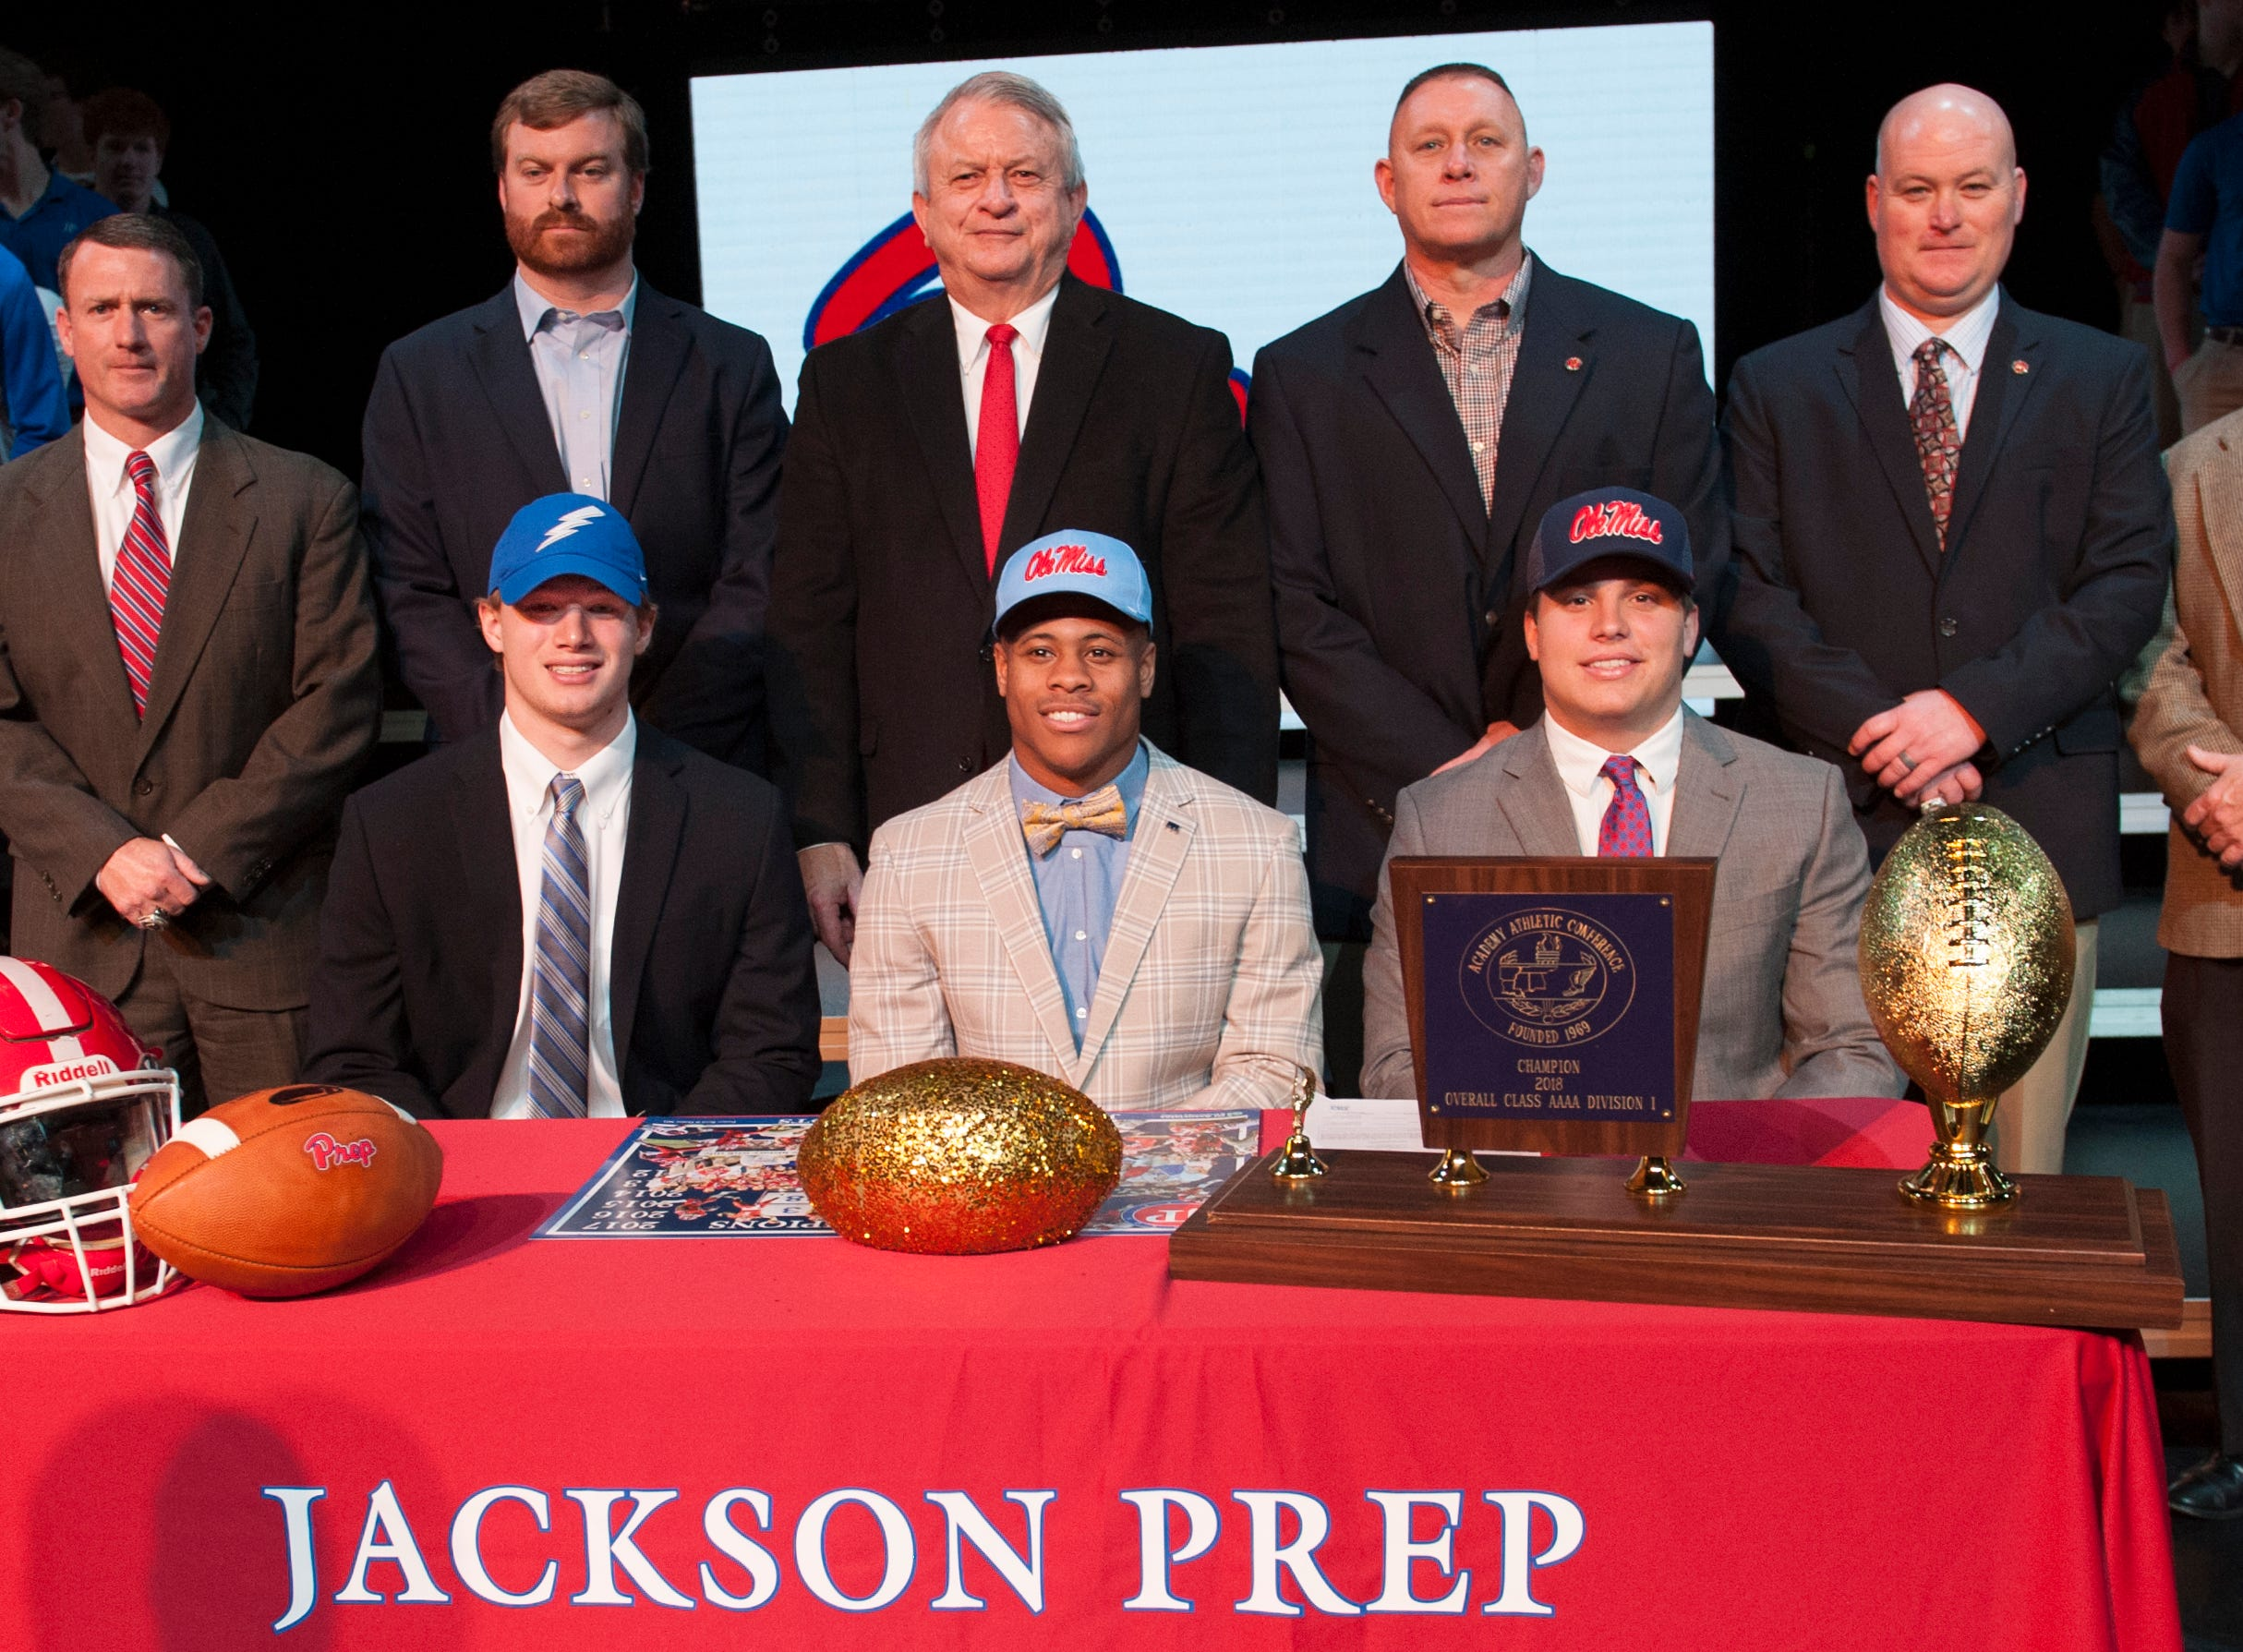 Jackson Prep's Peyton Greenwood, from left, signed with the United States Air Force Academy, and Jarrion Ealy and Adam Norsworth signed with Ole Miss during Signing Day at Prep Feb. 6, 2019. Behind them is the Jackson Prep coaching staff.